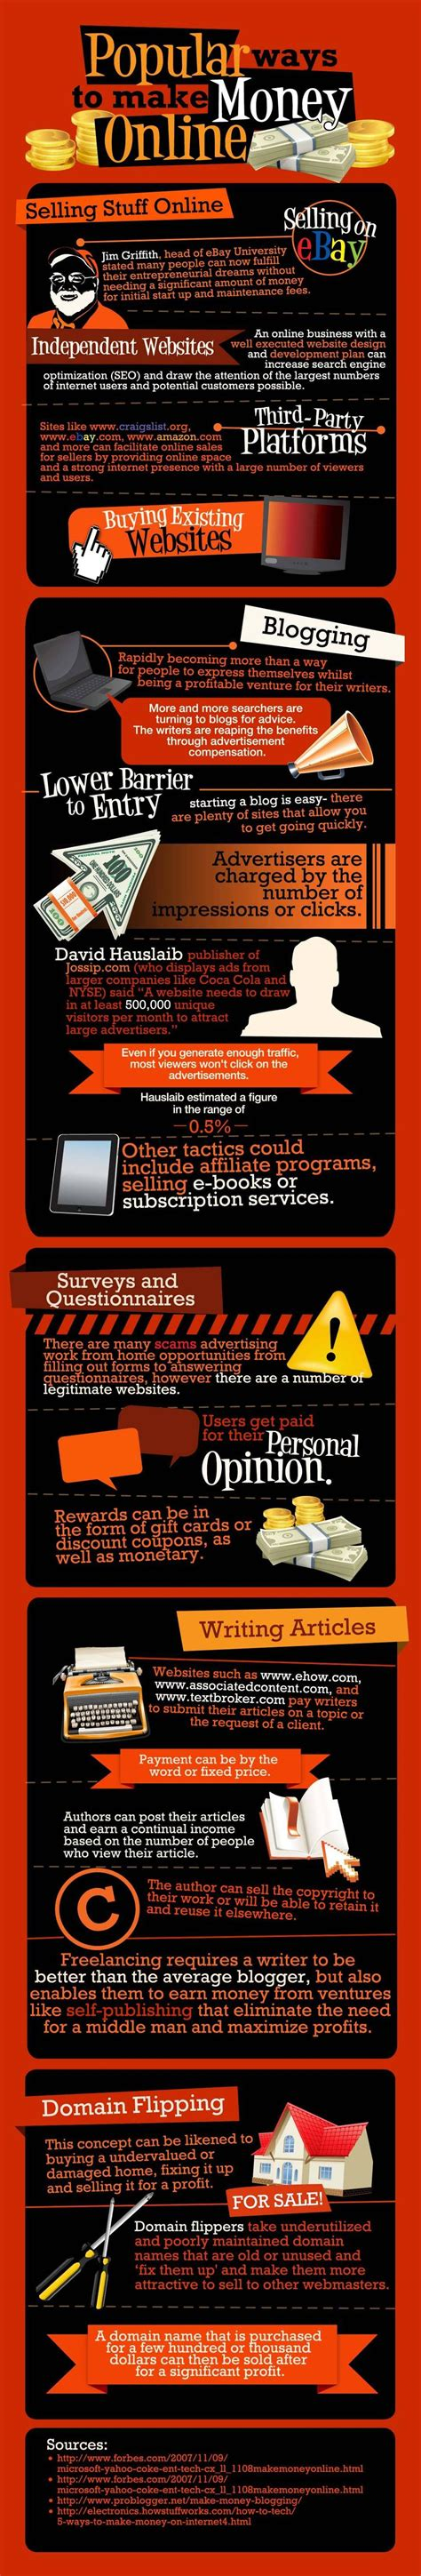 Money Making Online - ways for money making online infographic